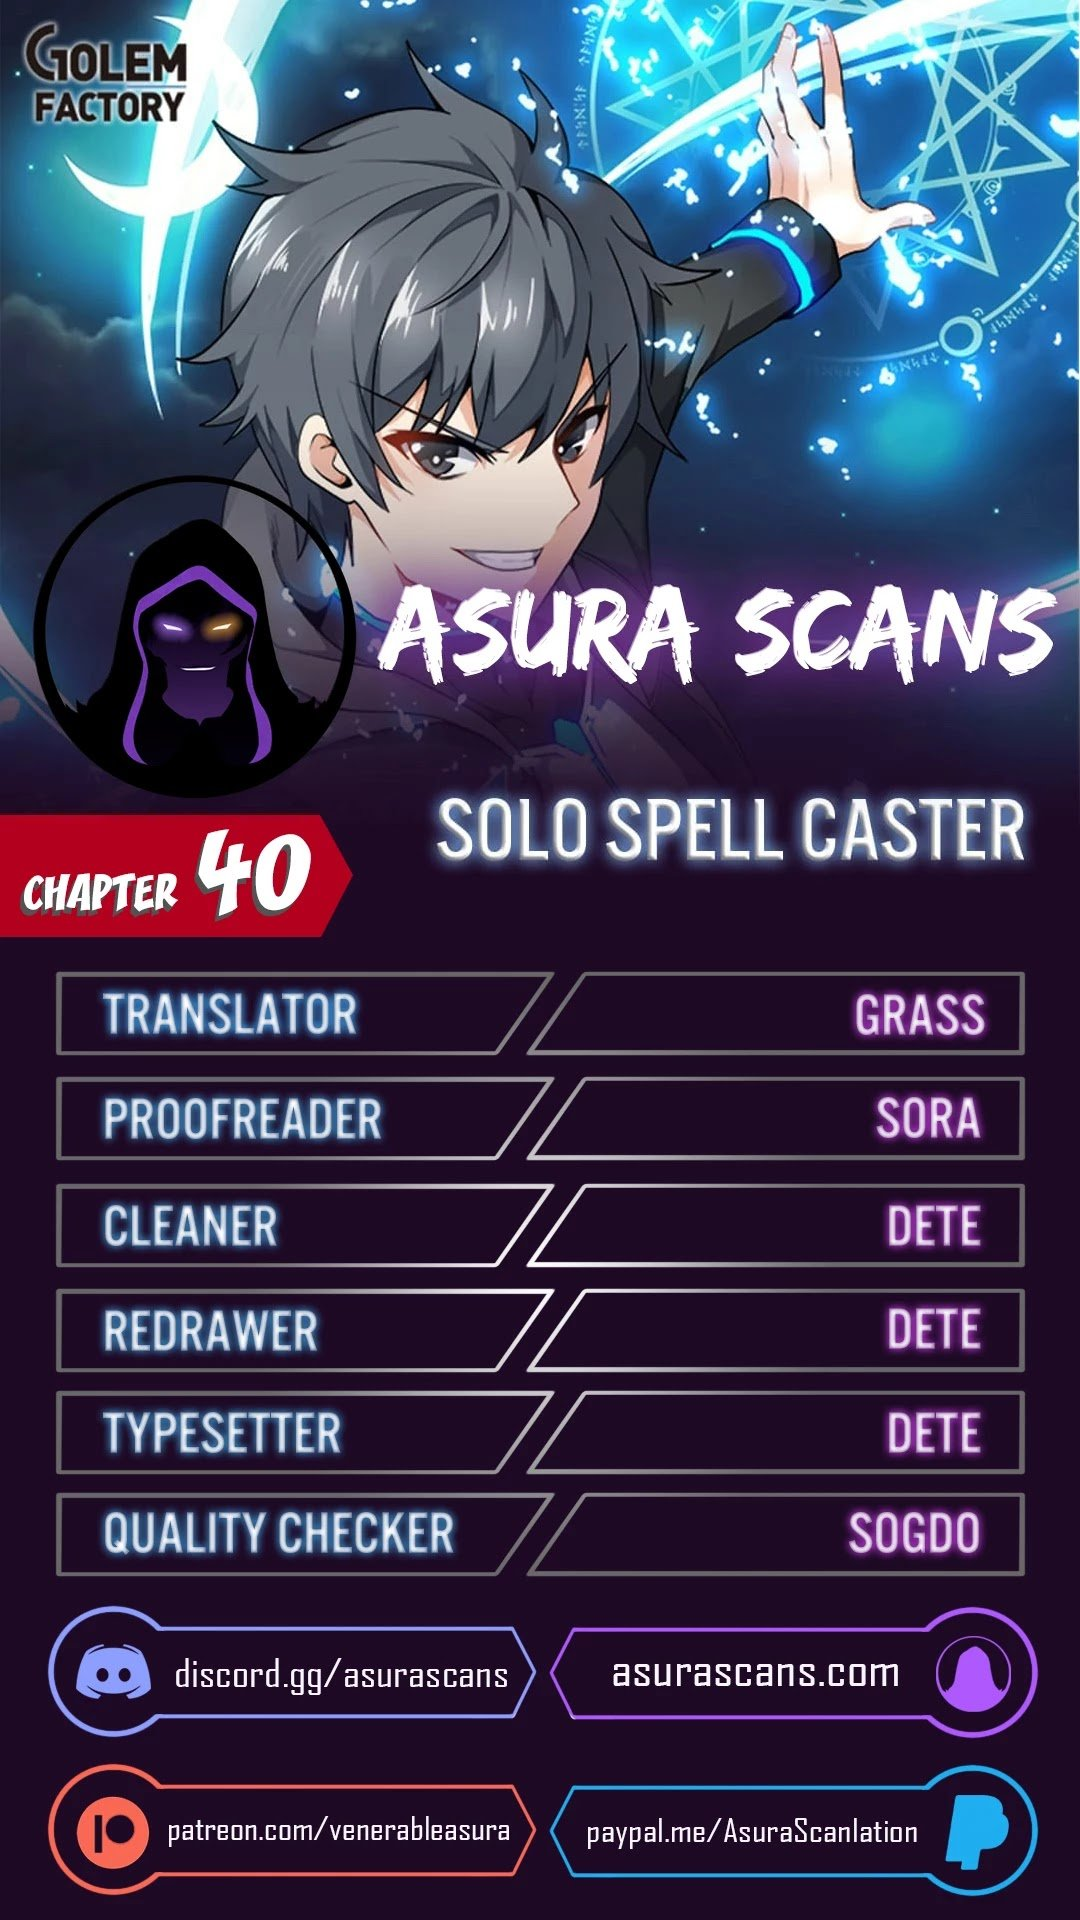 Solo Spell Caster - chapter 40 - #1